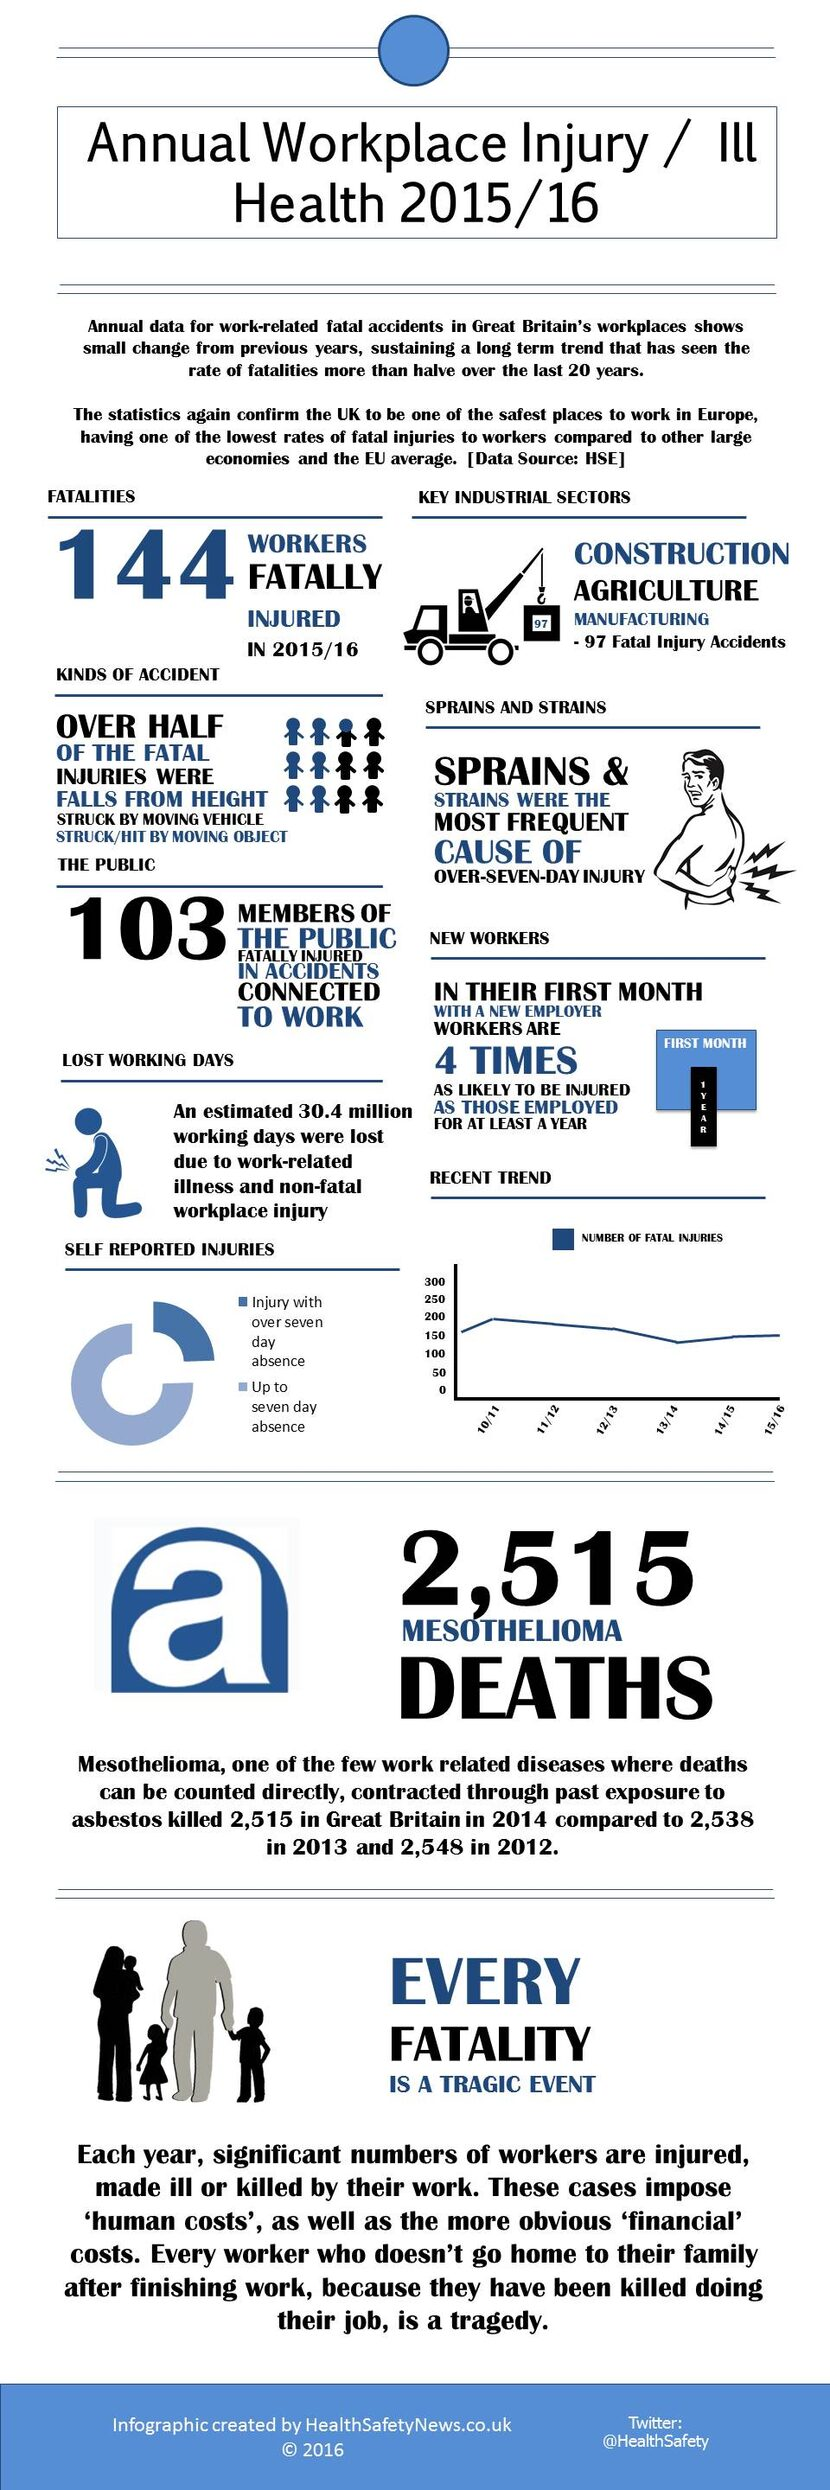 safety and health infographic showing workplace injury and ill-health statistics for 2015/16